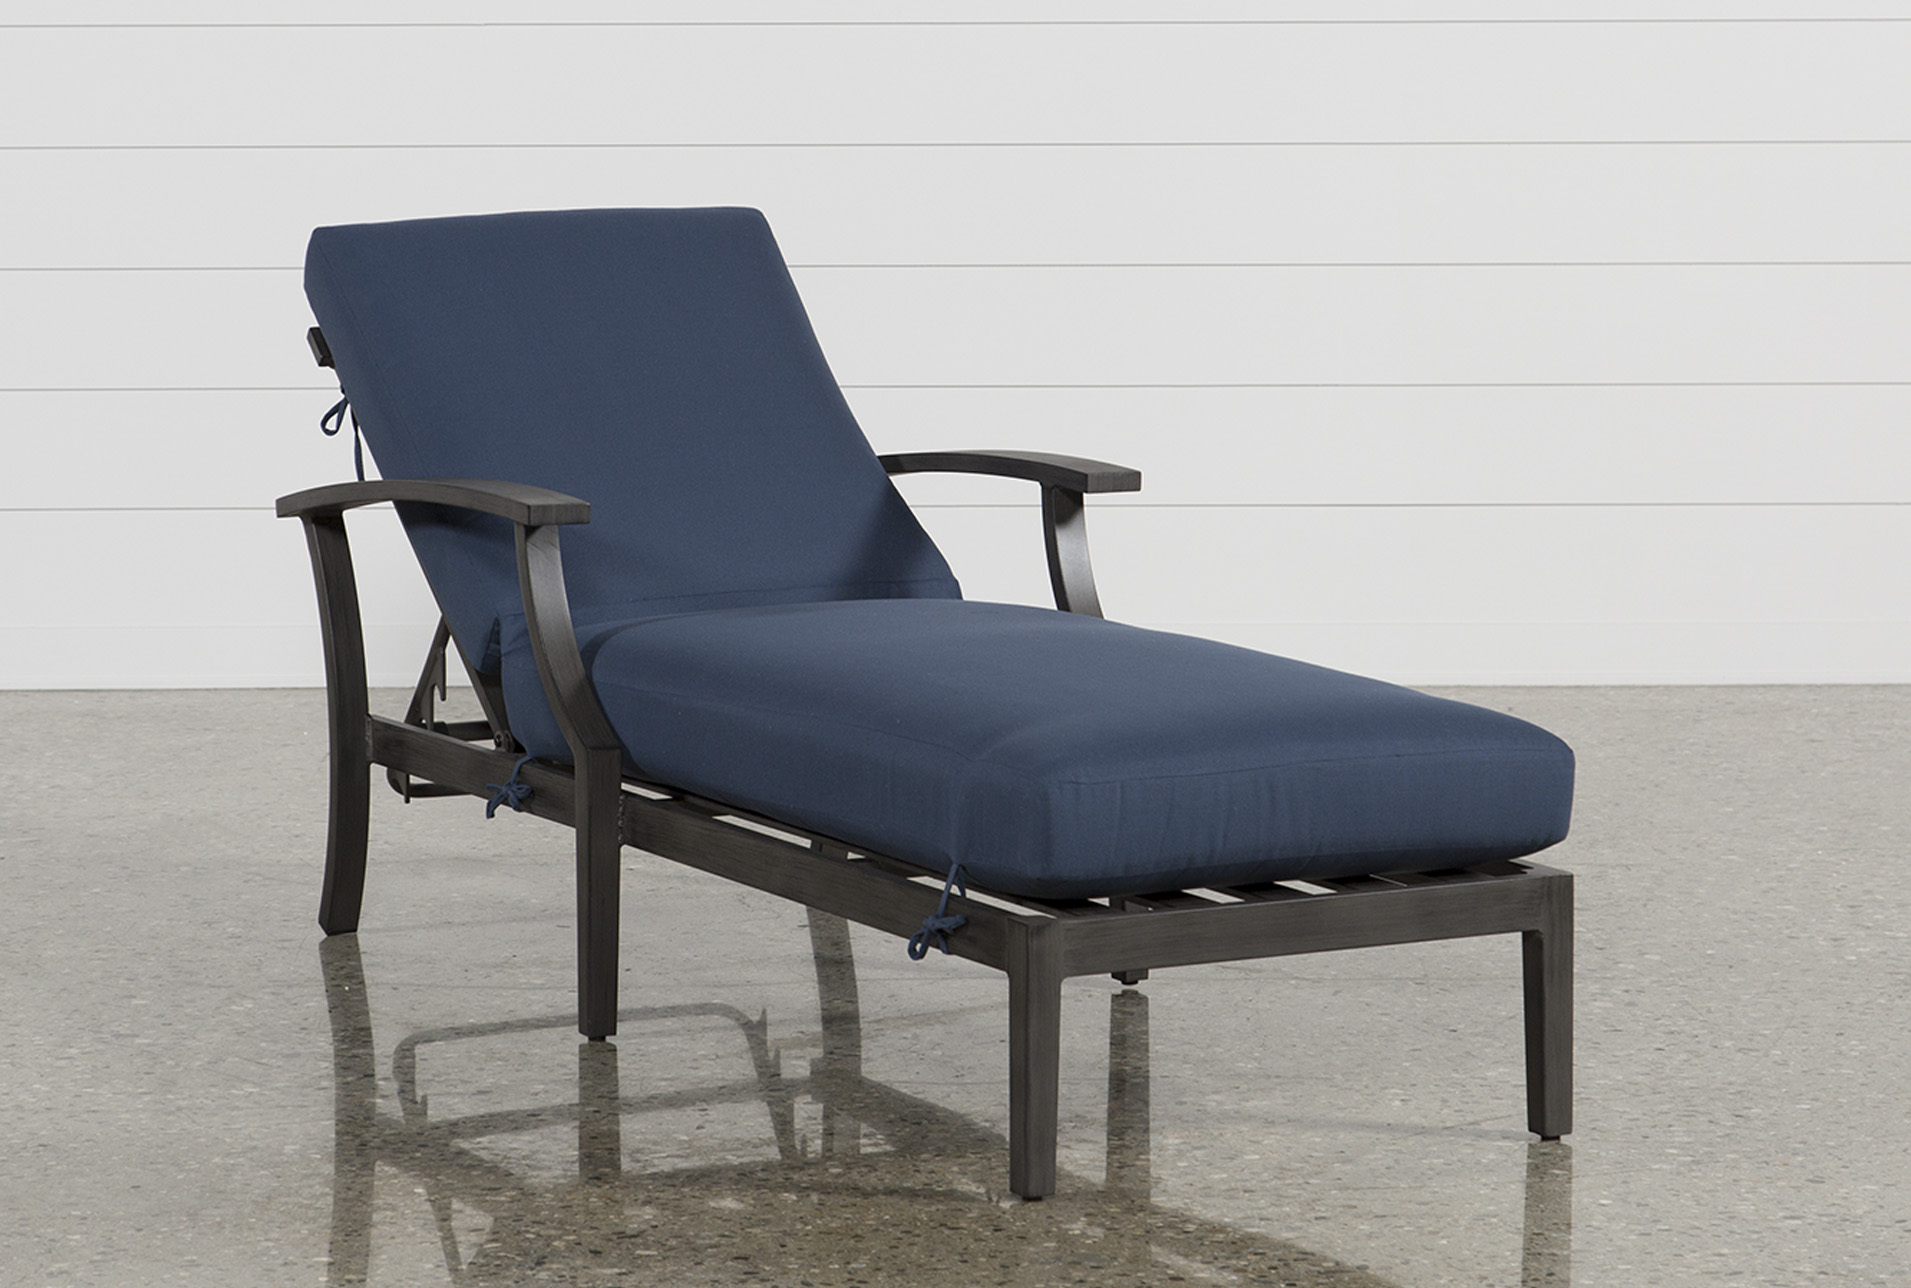 chaise lounge outdoor outdoor martinique navy chaise lounge